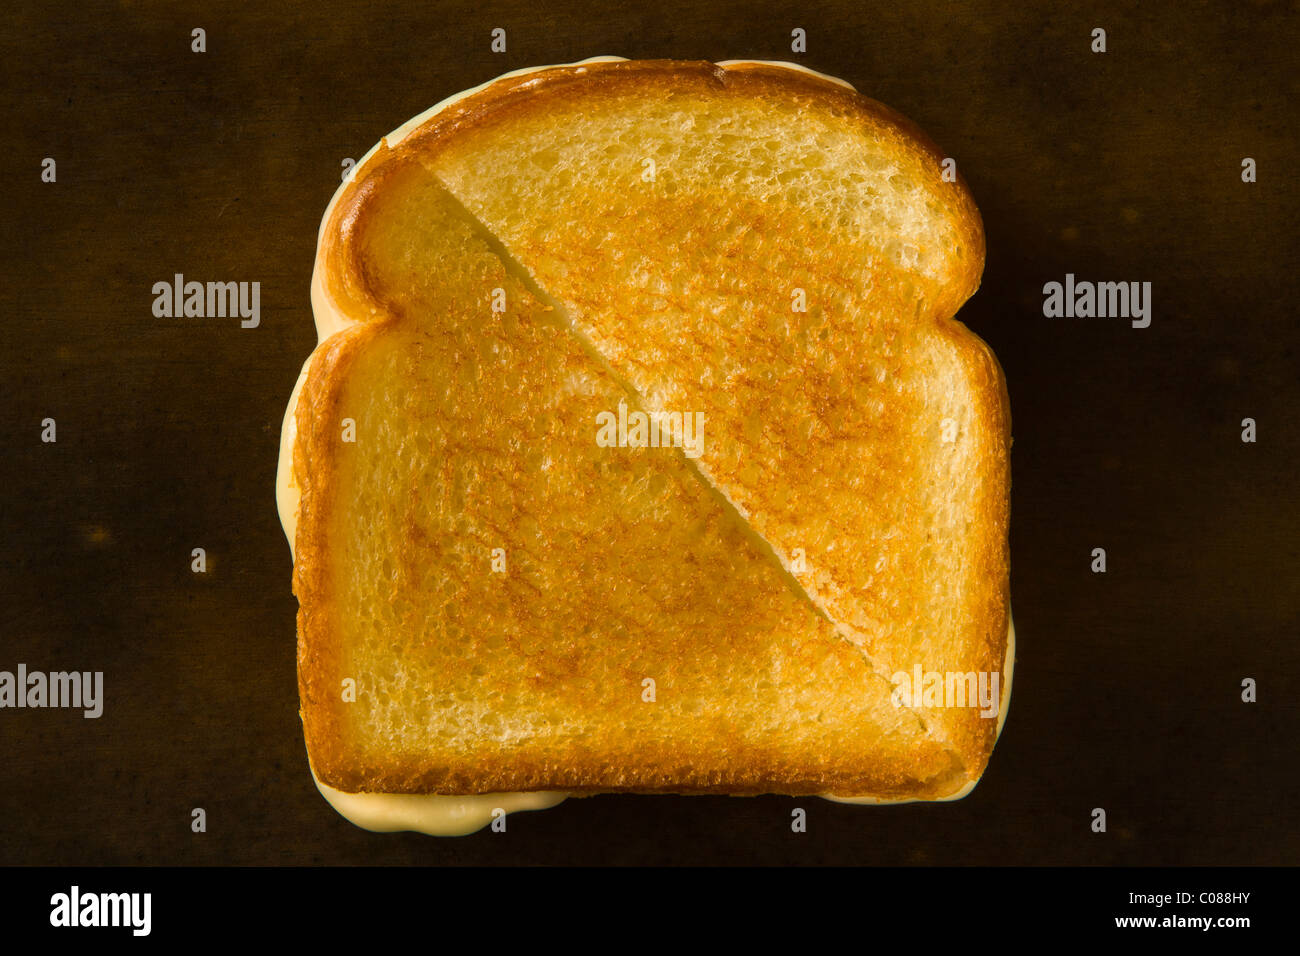 A Grilled Cheese Sandwich cut in half diagonally pulling the cheese on a wood table - Stock Image